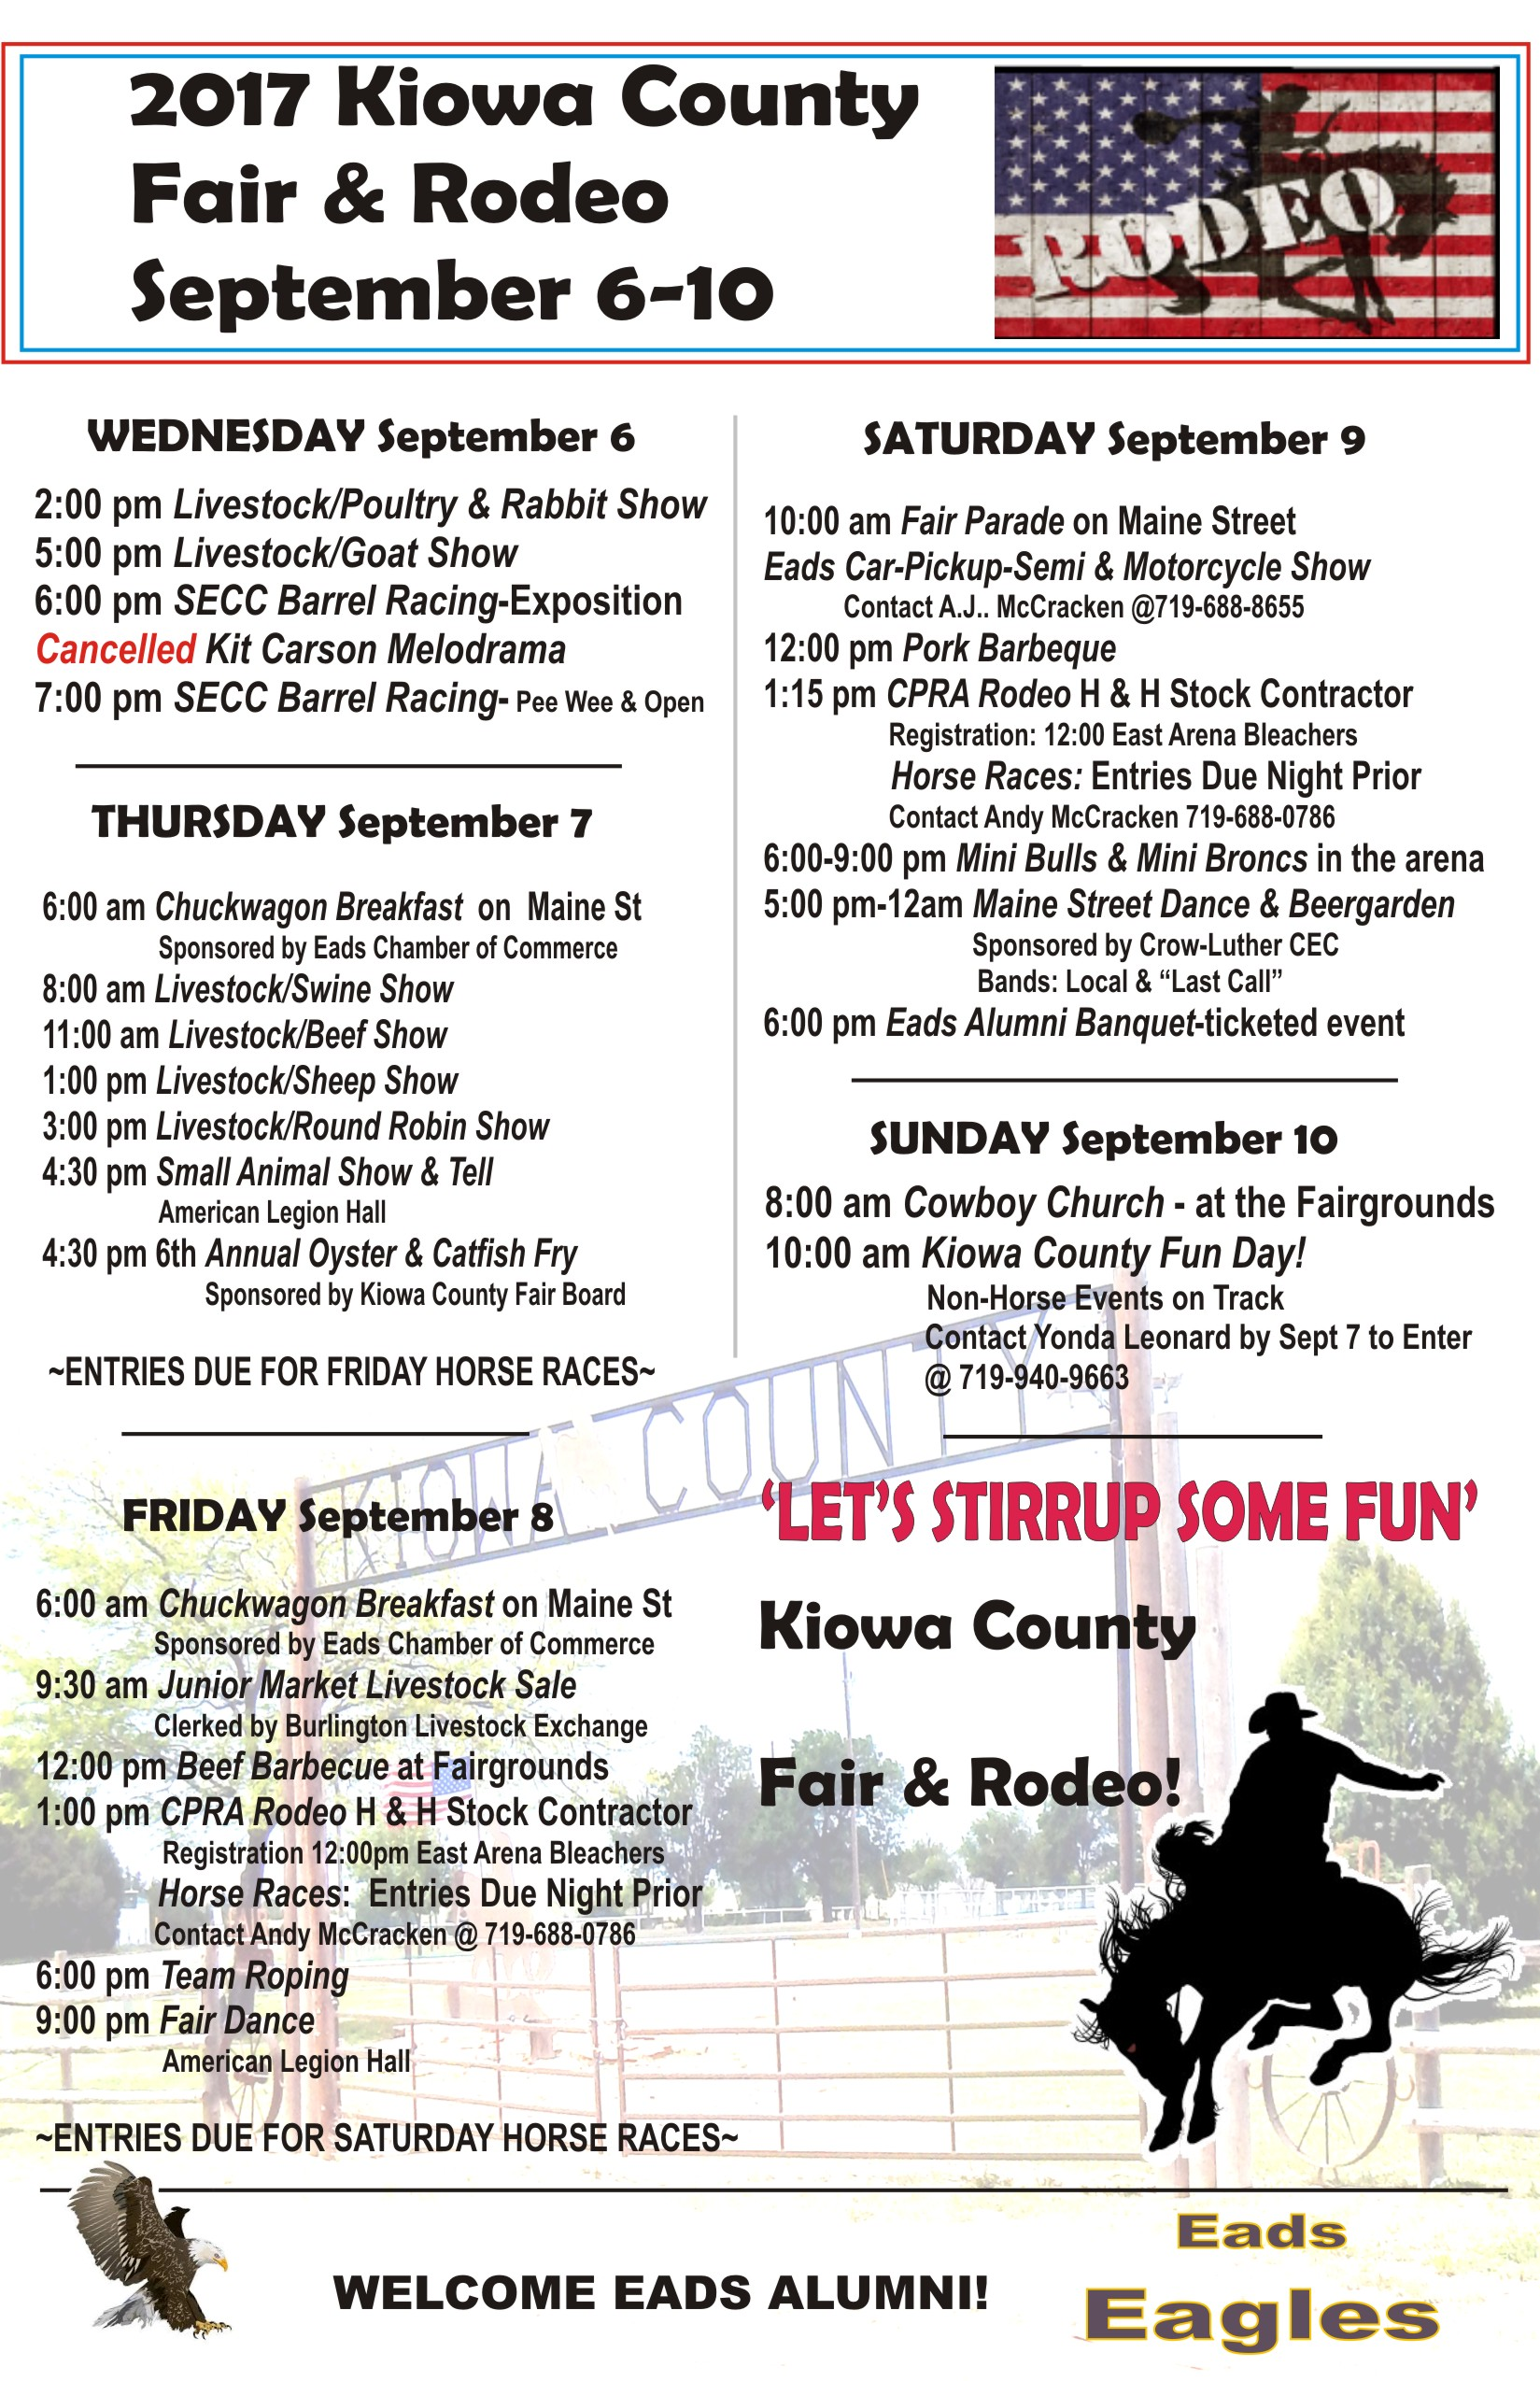 ADV - 2017 Kiowa County Fair Events